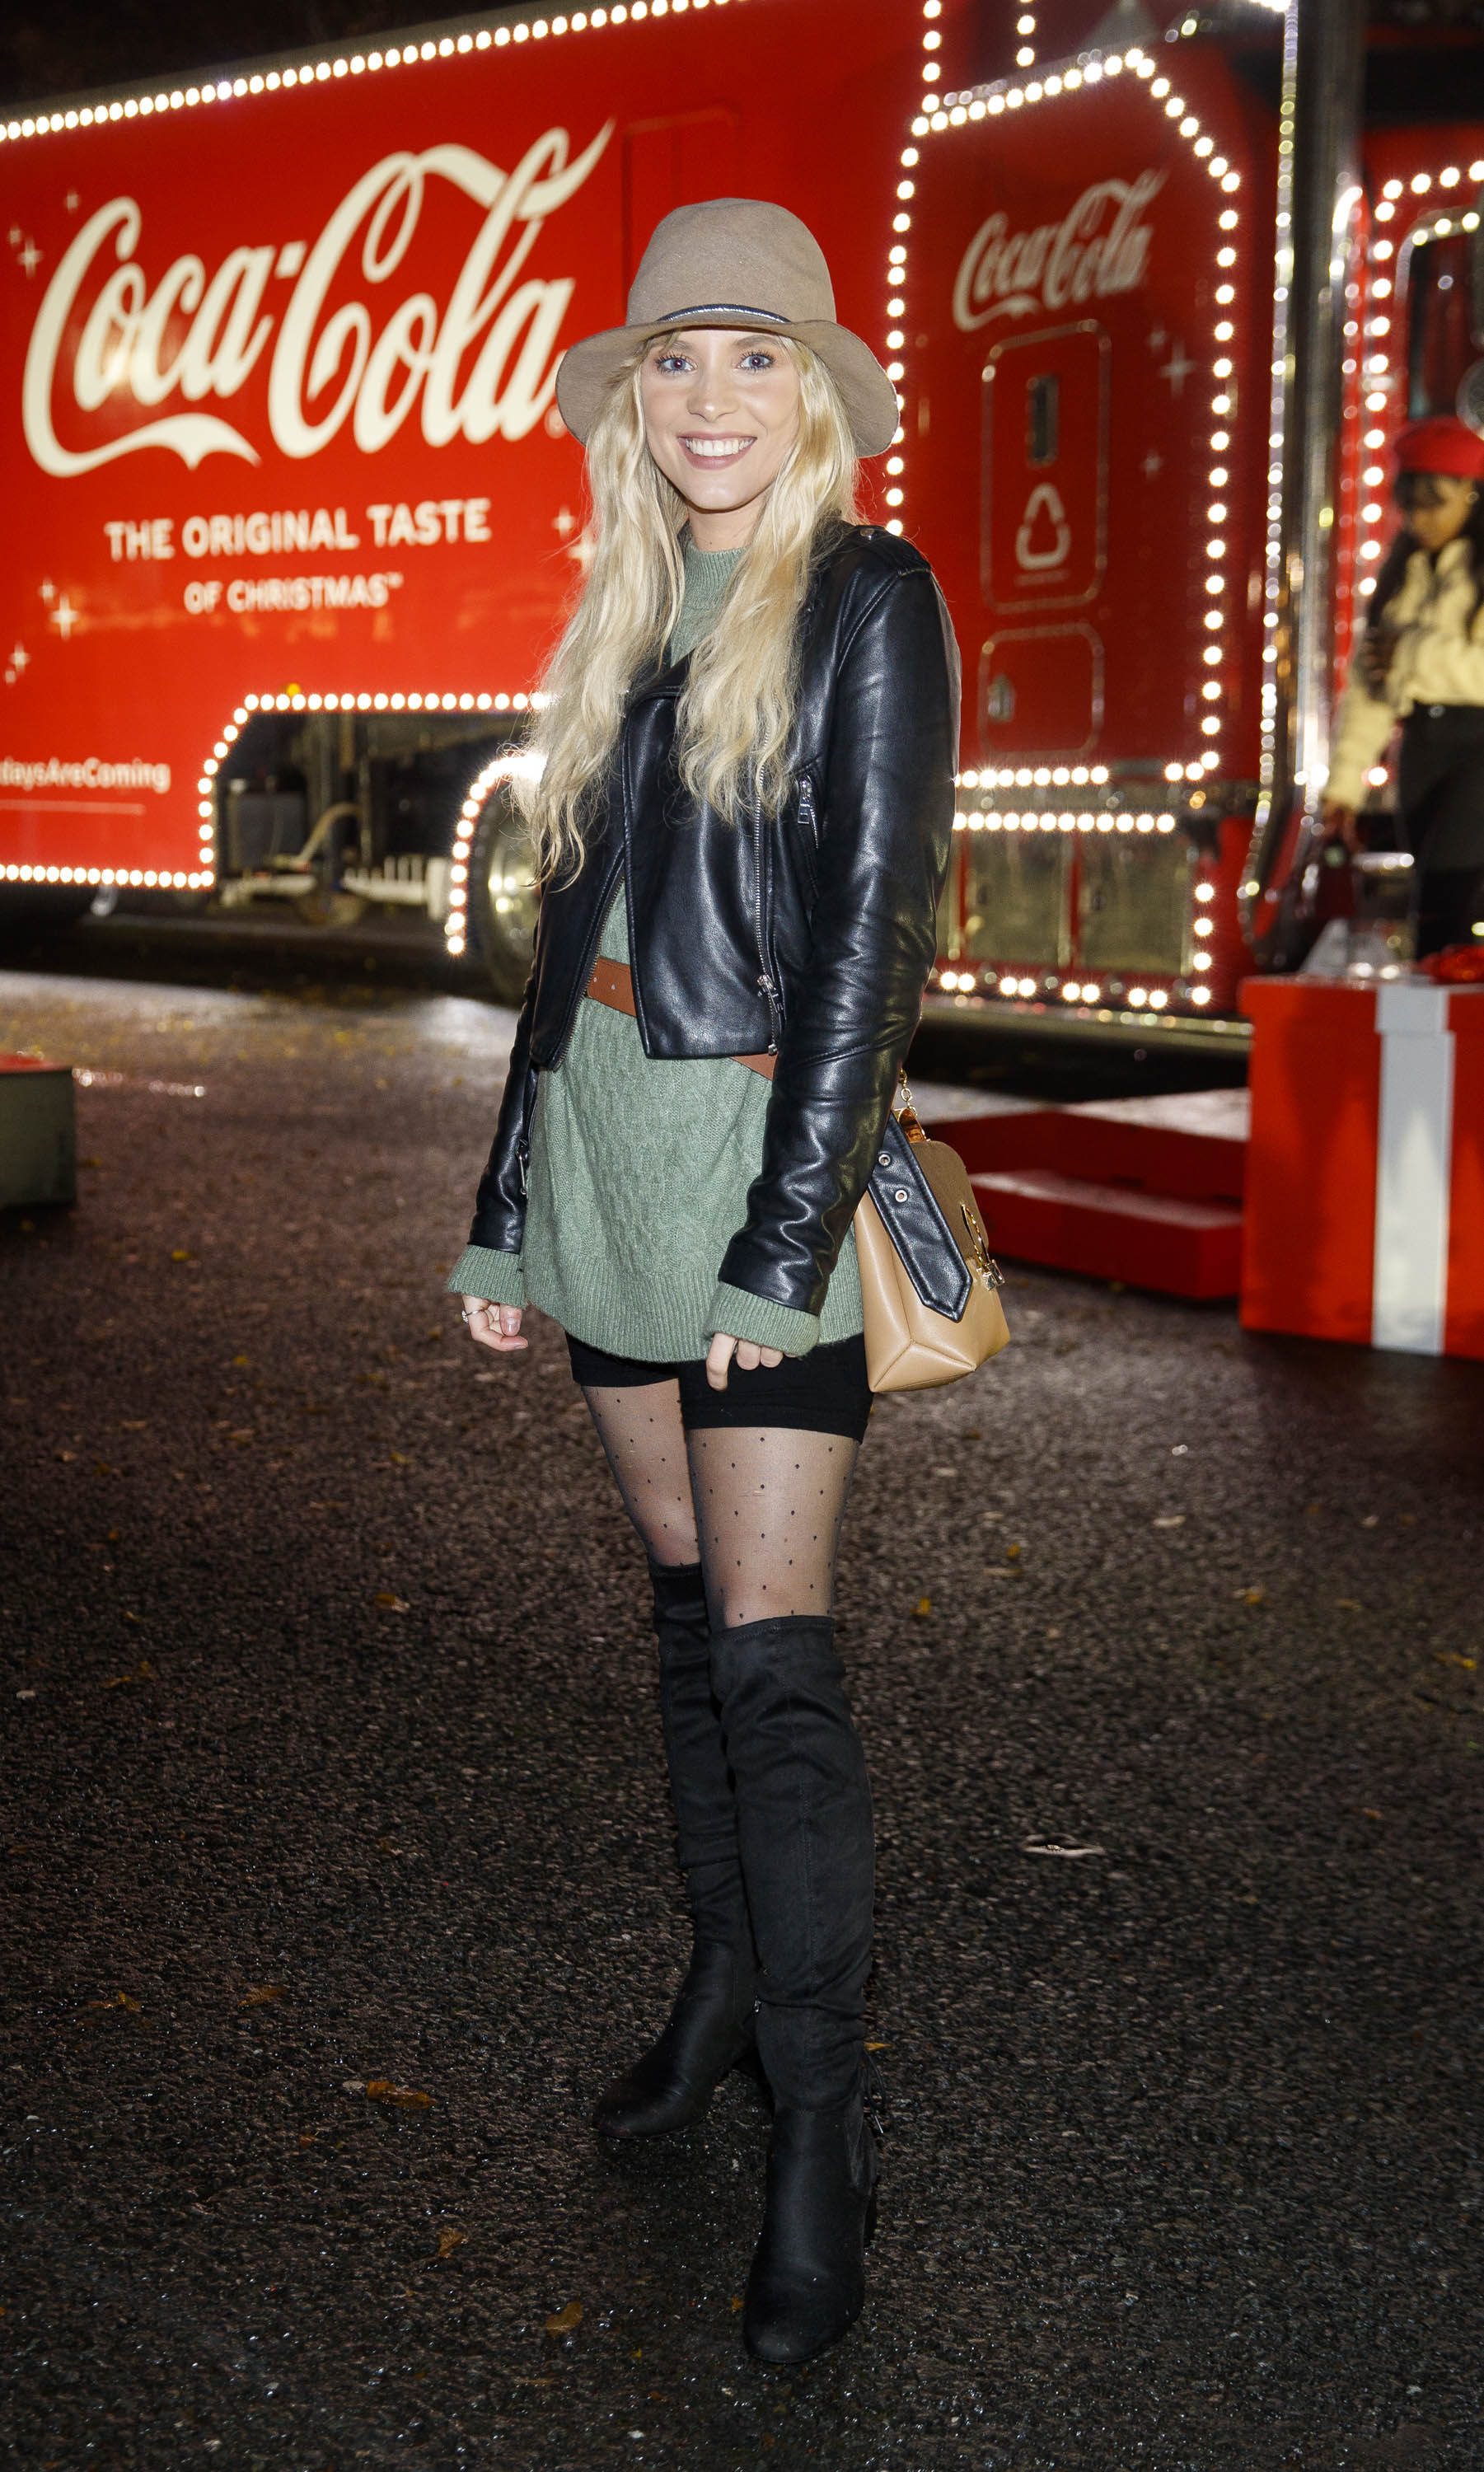 Maja Moranska pictured at Coca-Cola's Christmas Truck Tour launch which took place Monday 25th November at the RDS, Dublin. Photo: Andres Poveda